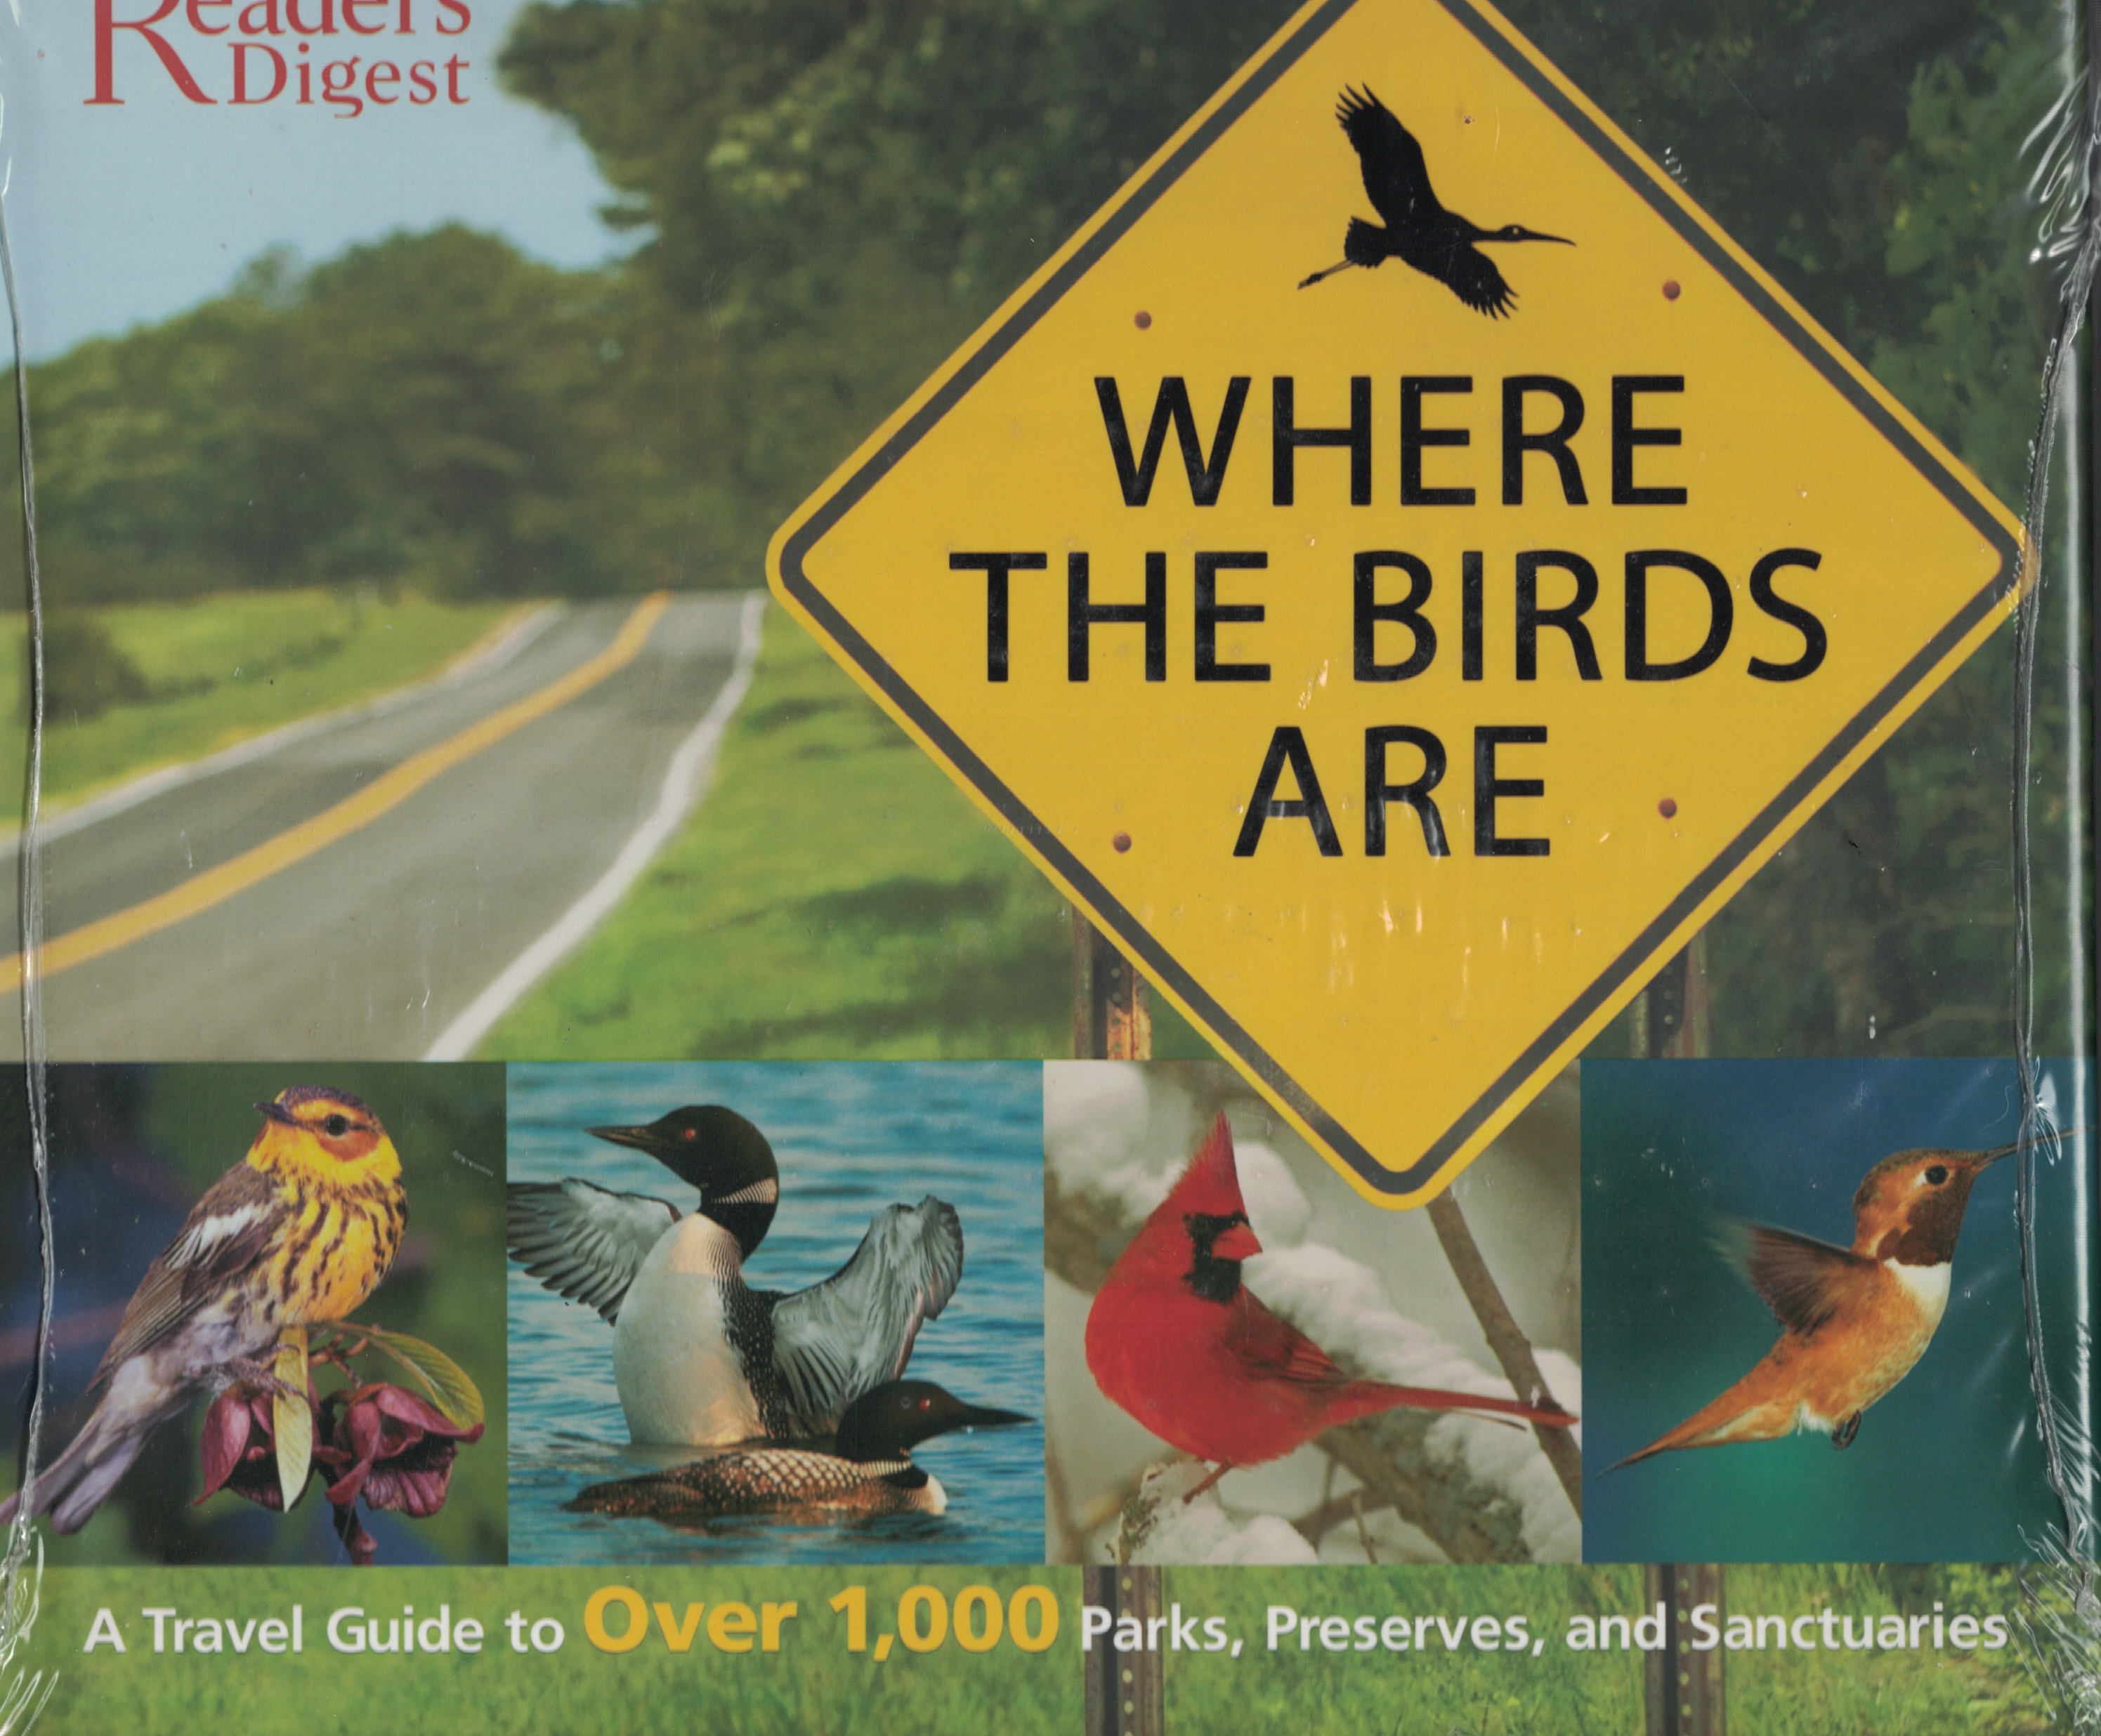 Image for Where The Birds Are Travl Guide to over 1,00 Parks, Preserves and Sanctuaries